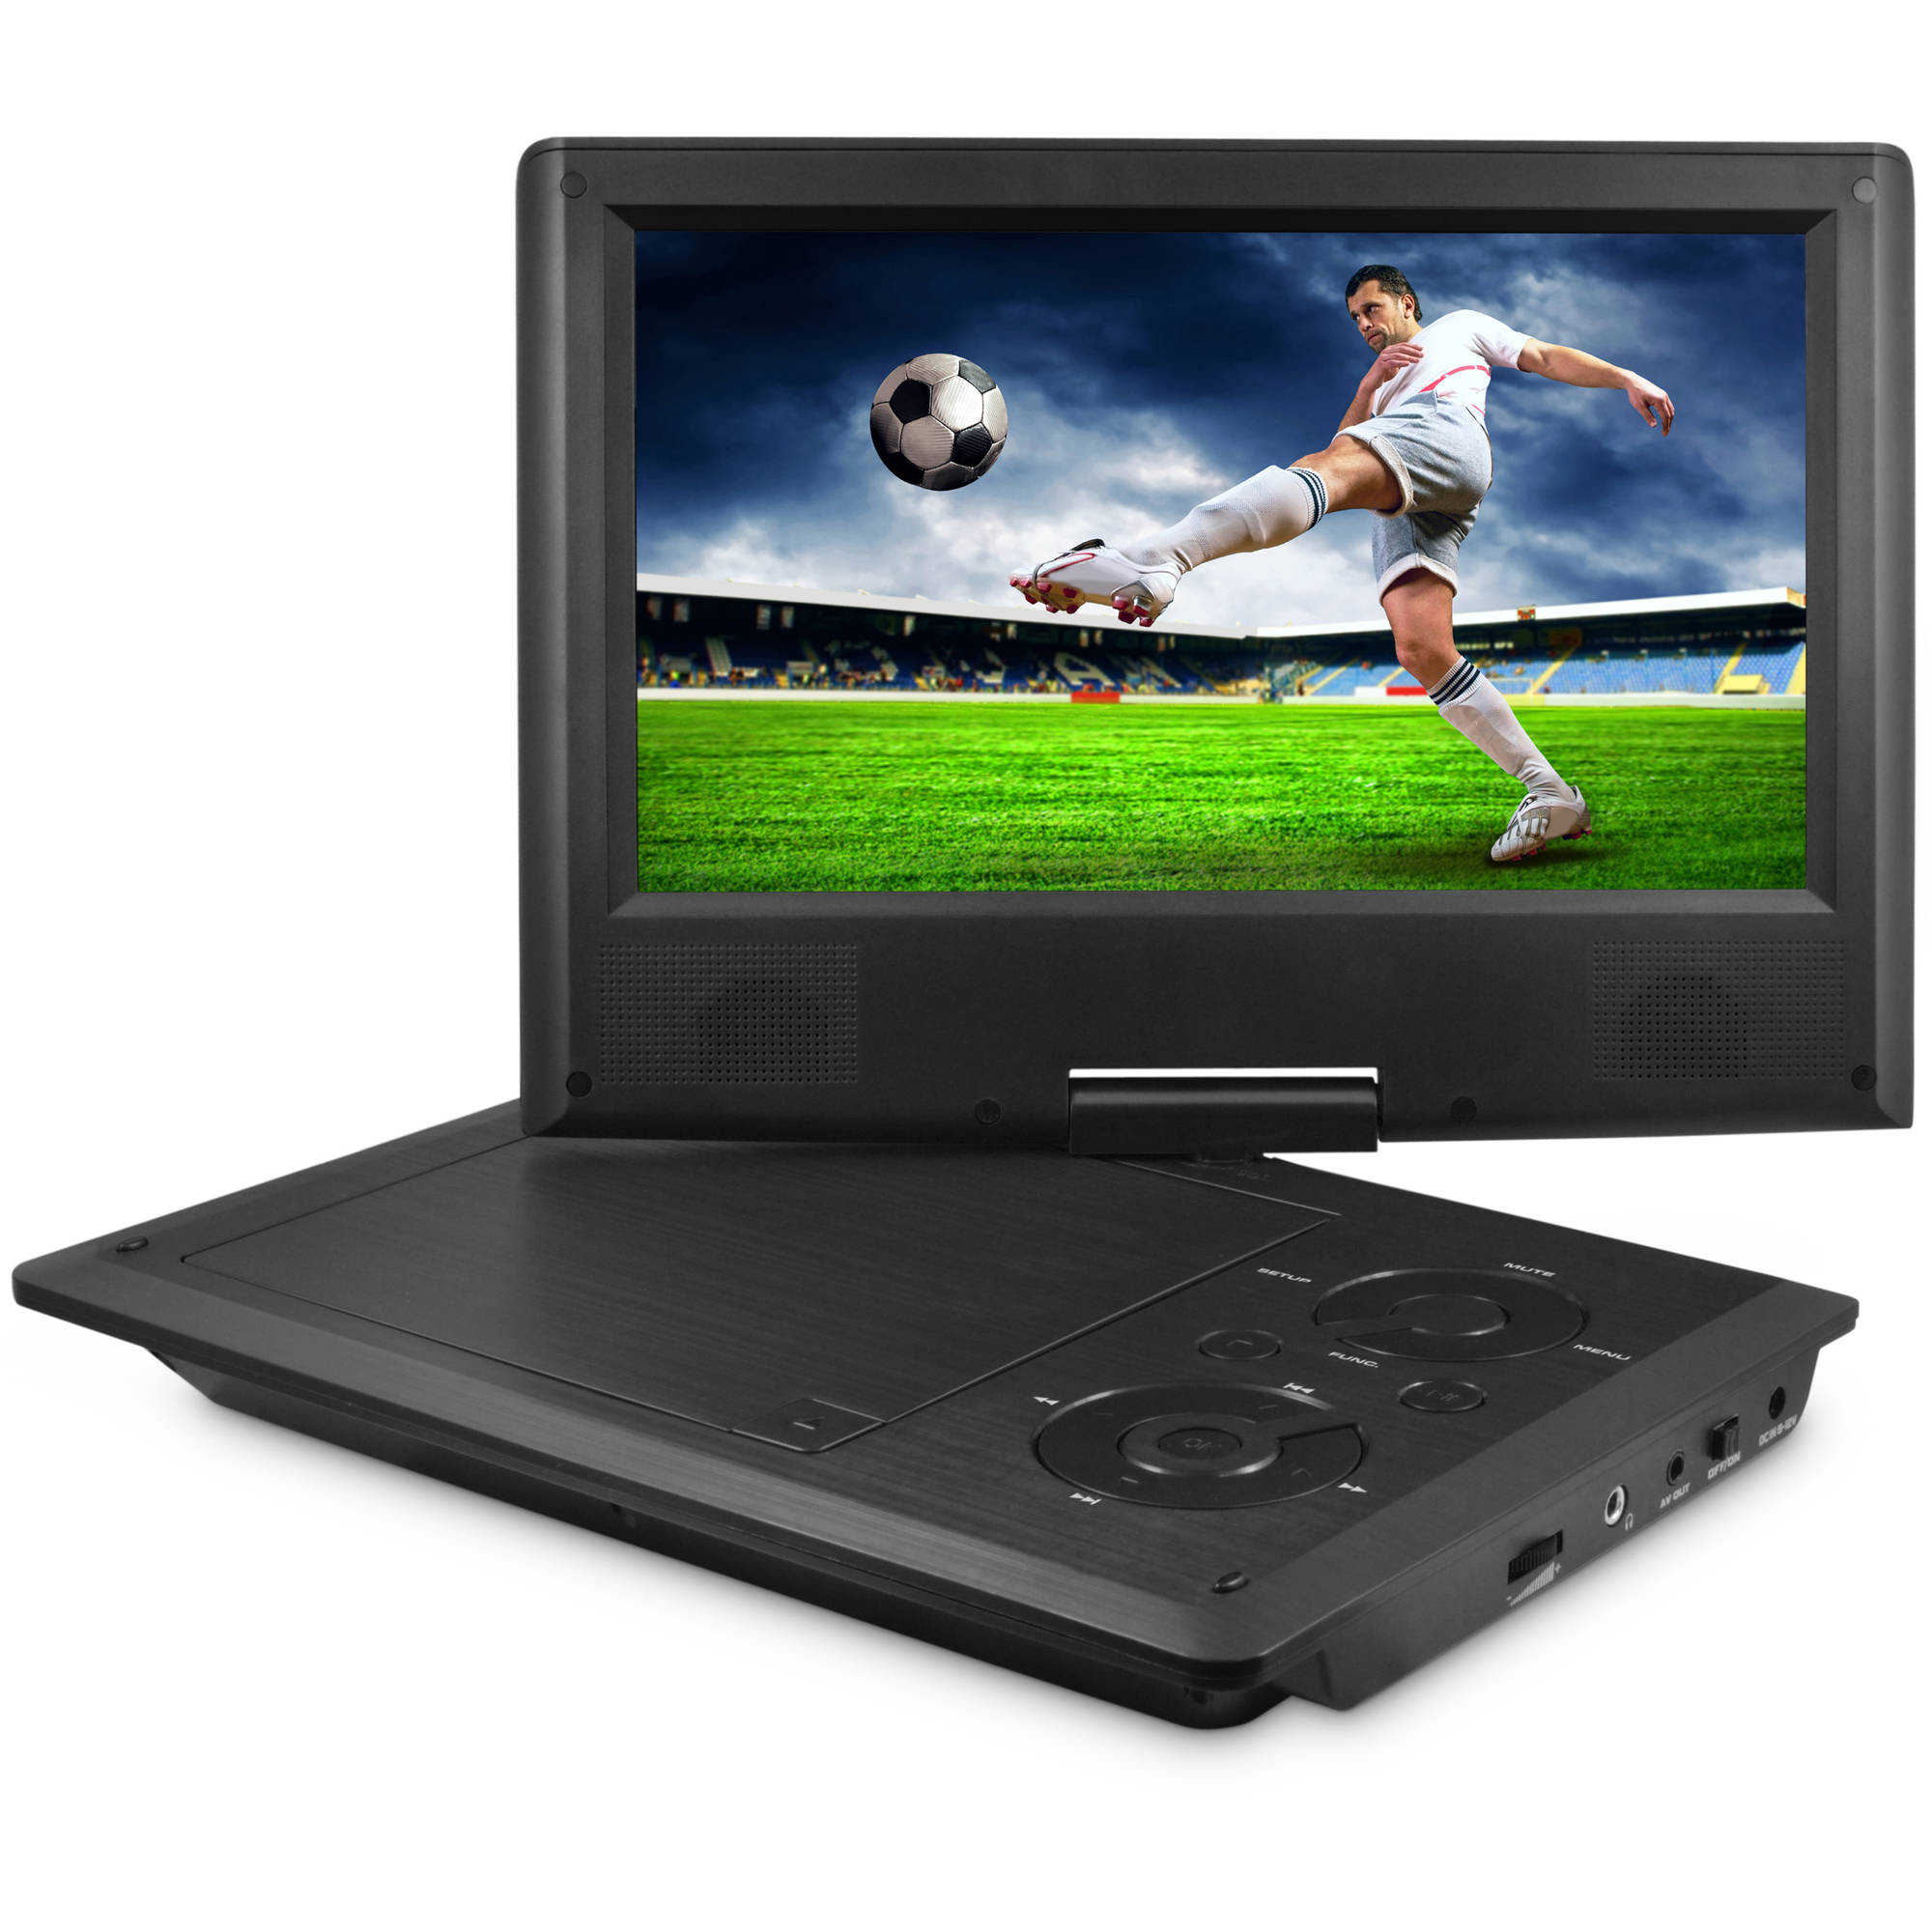 Ematic 9' Portable DVD Player with Matching Headphones and Bag